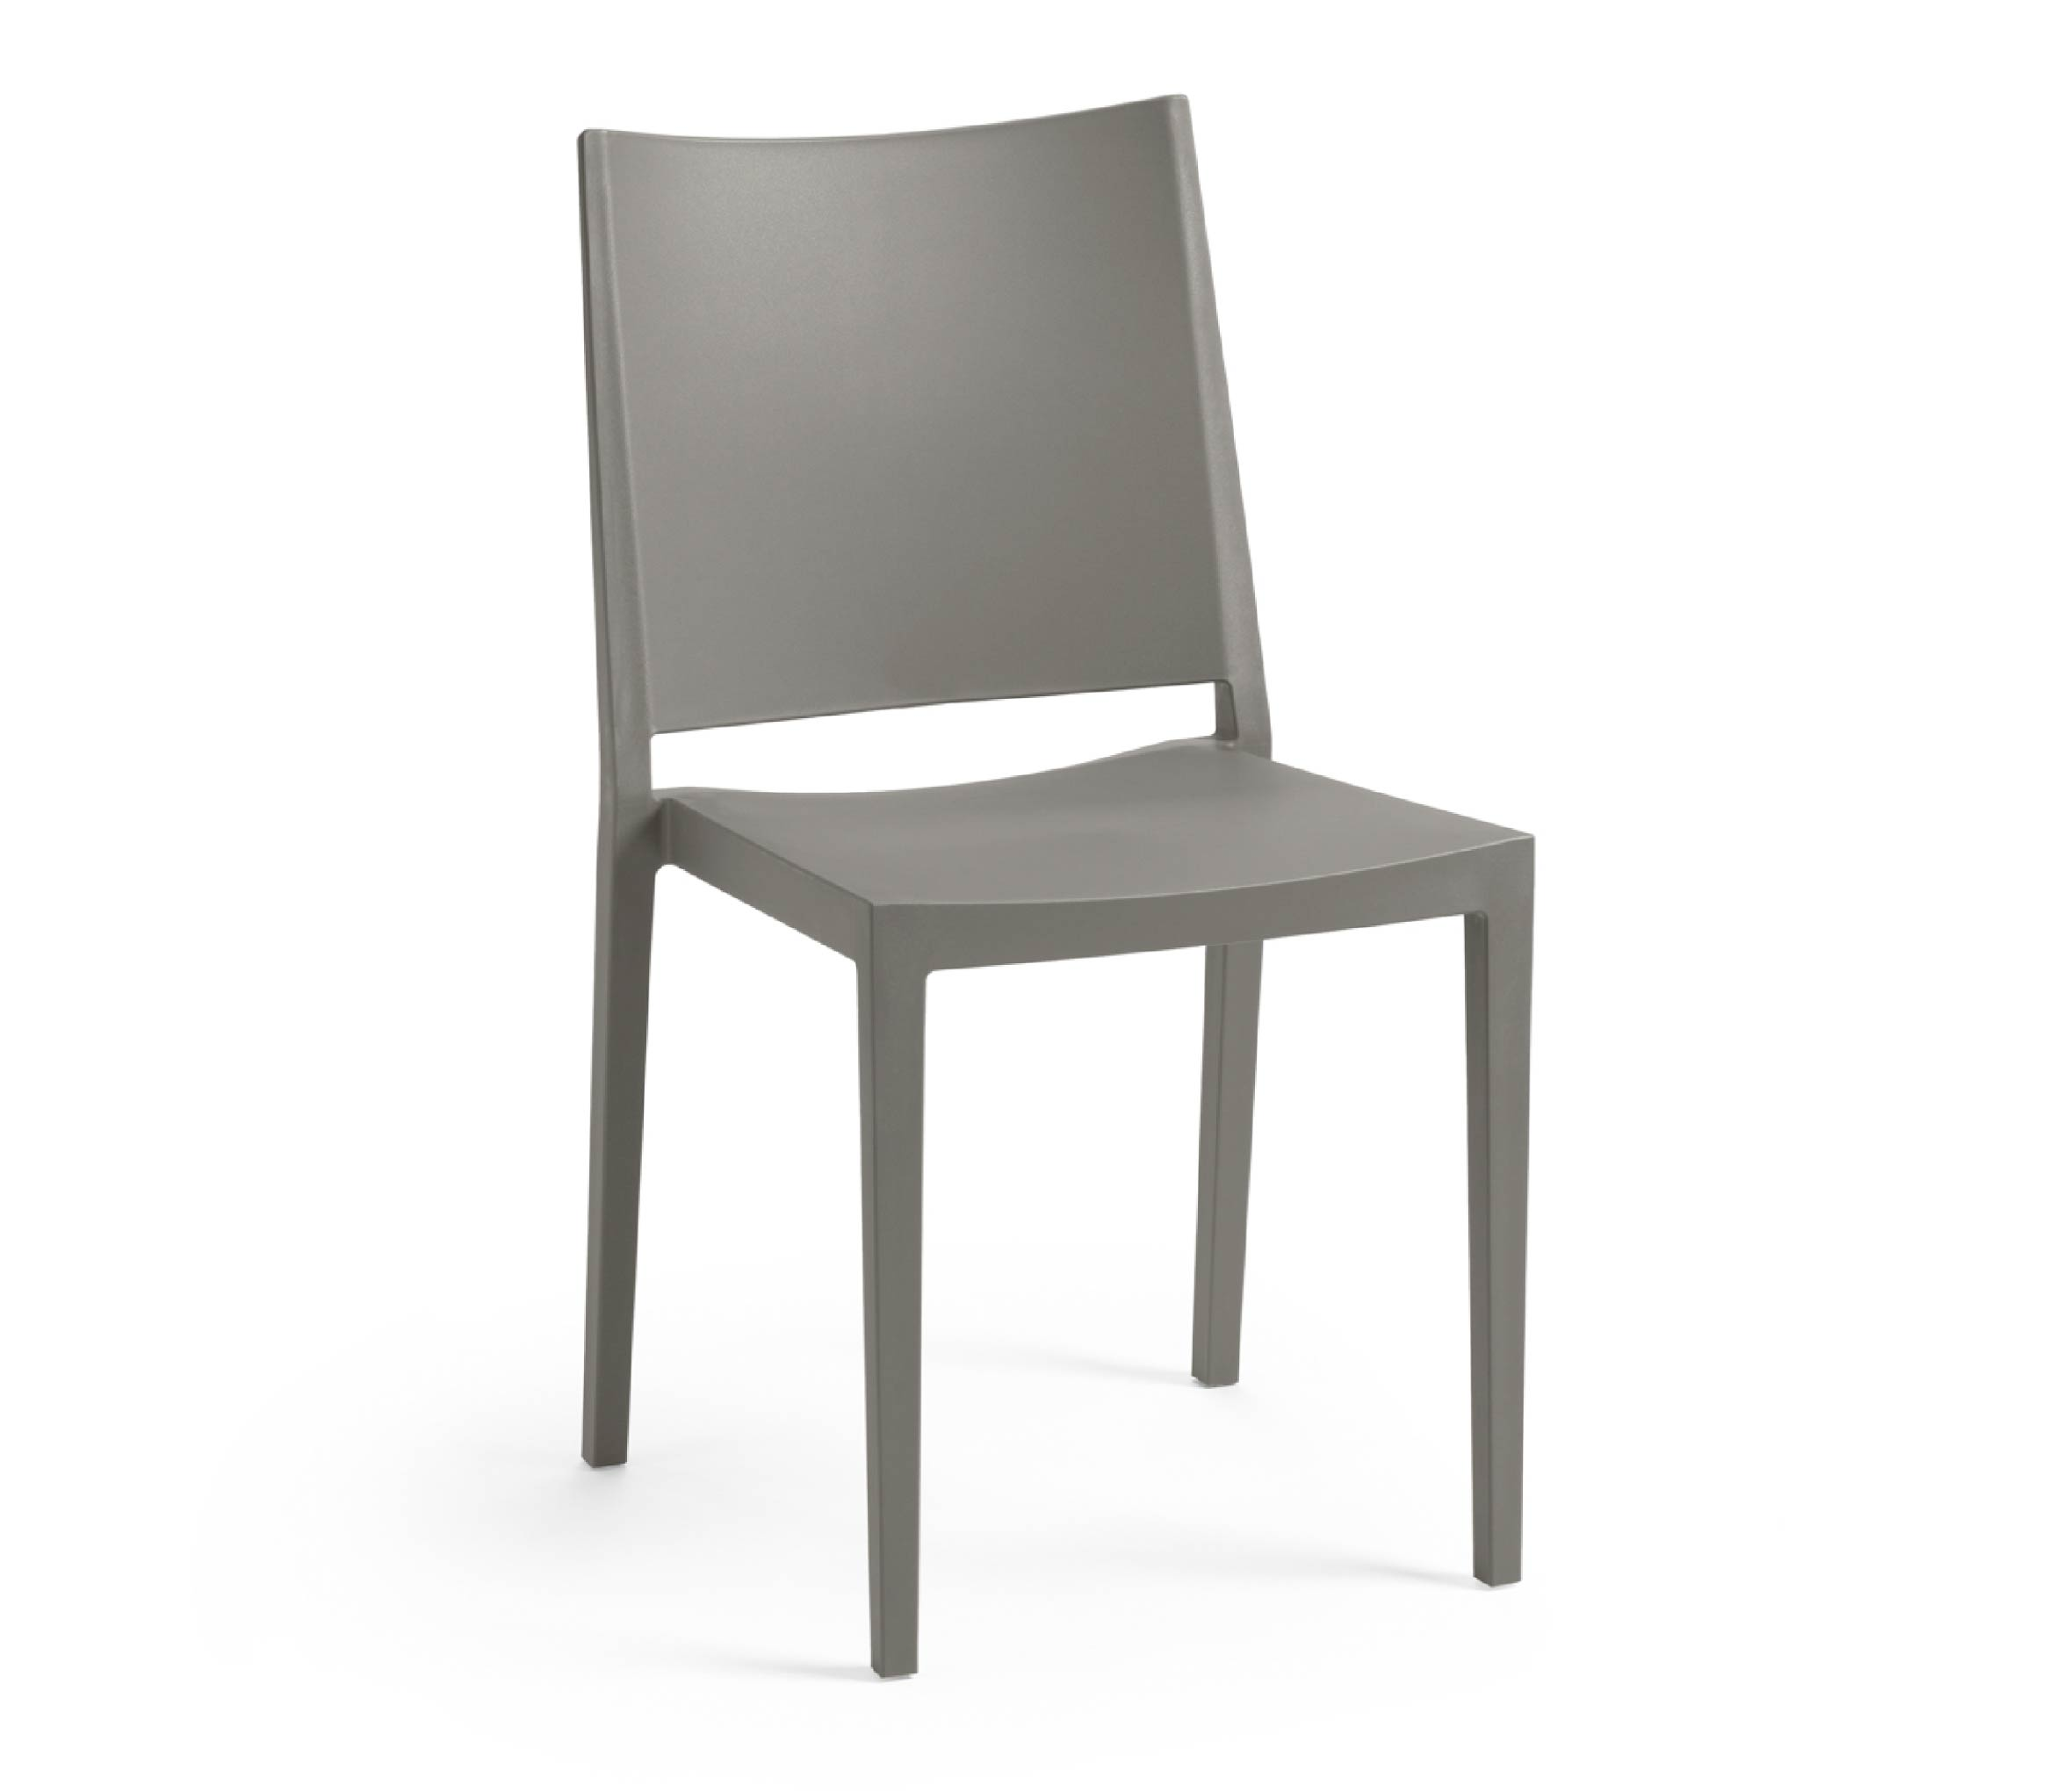 5 - TENSAI_FURNITURE_MOSK_CHAIR_GREY_COLOR_PLASTIC_white_background - _954_001